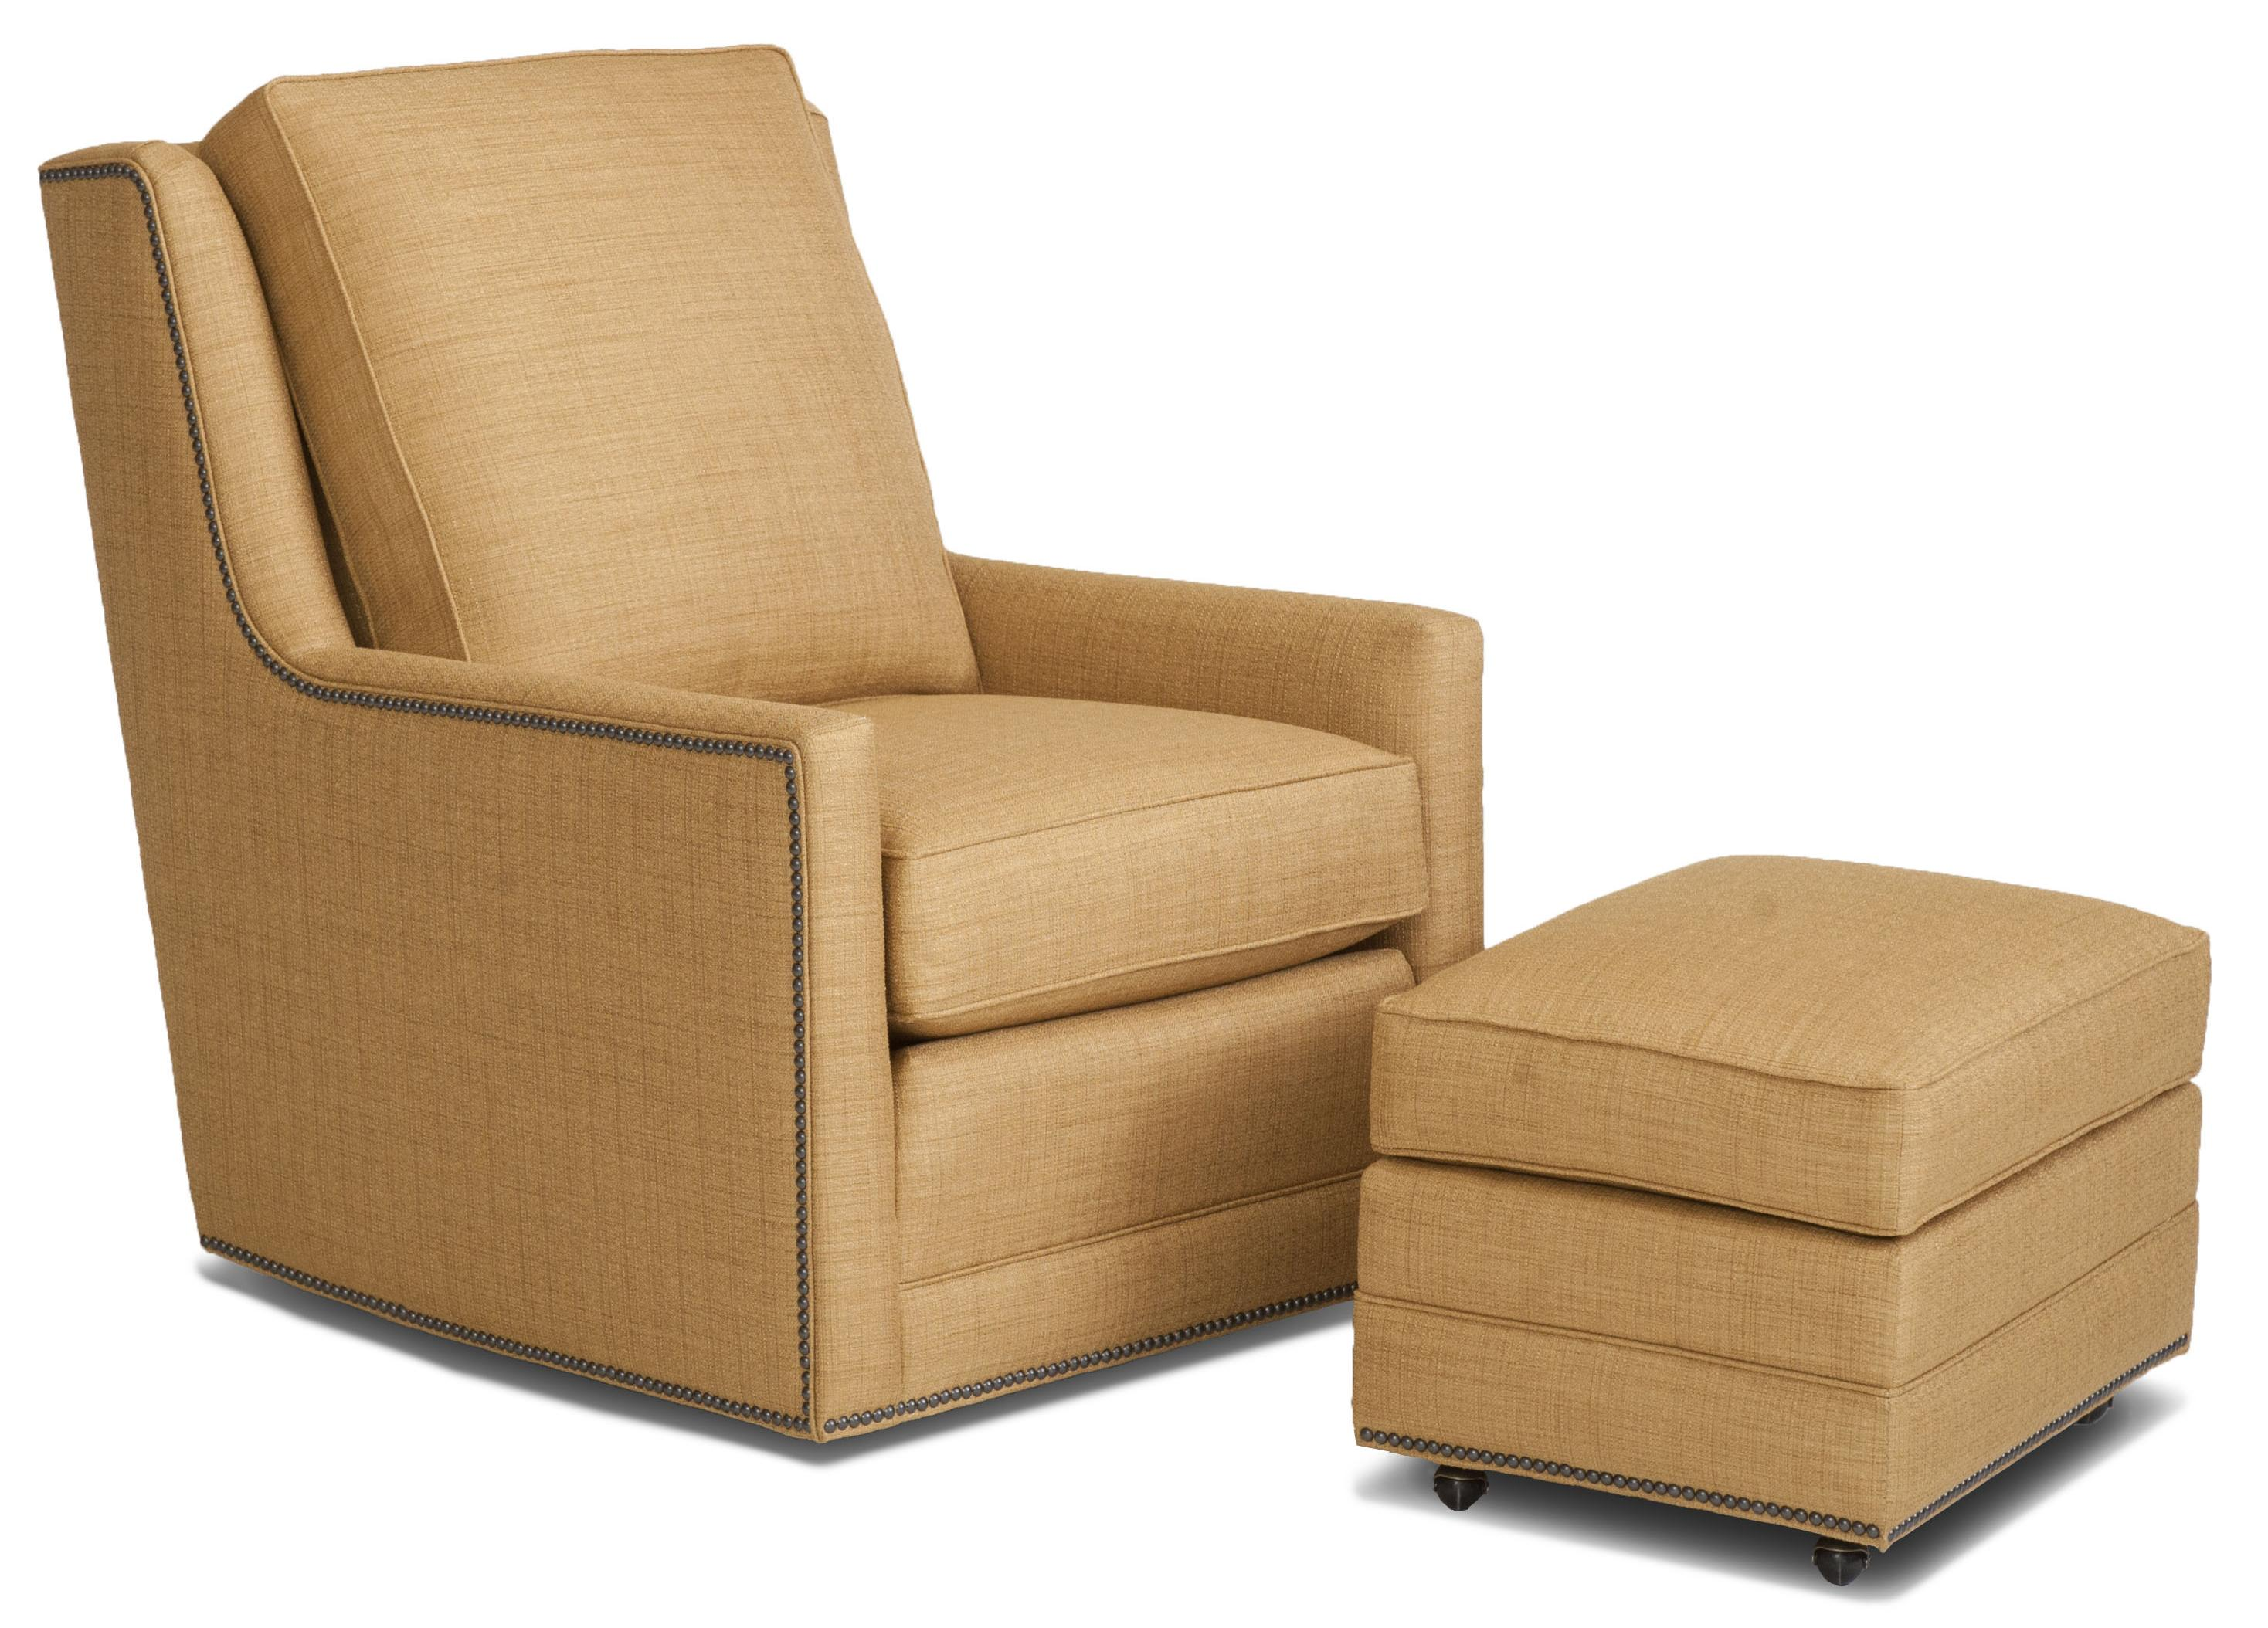 Accent Chairs and Ottomans SB Swivel Chair and Ottoman Set by Smith Brothers at Pilgrim Furniture City